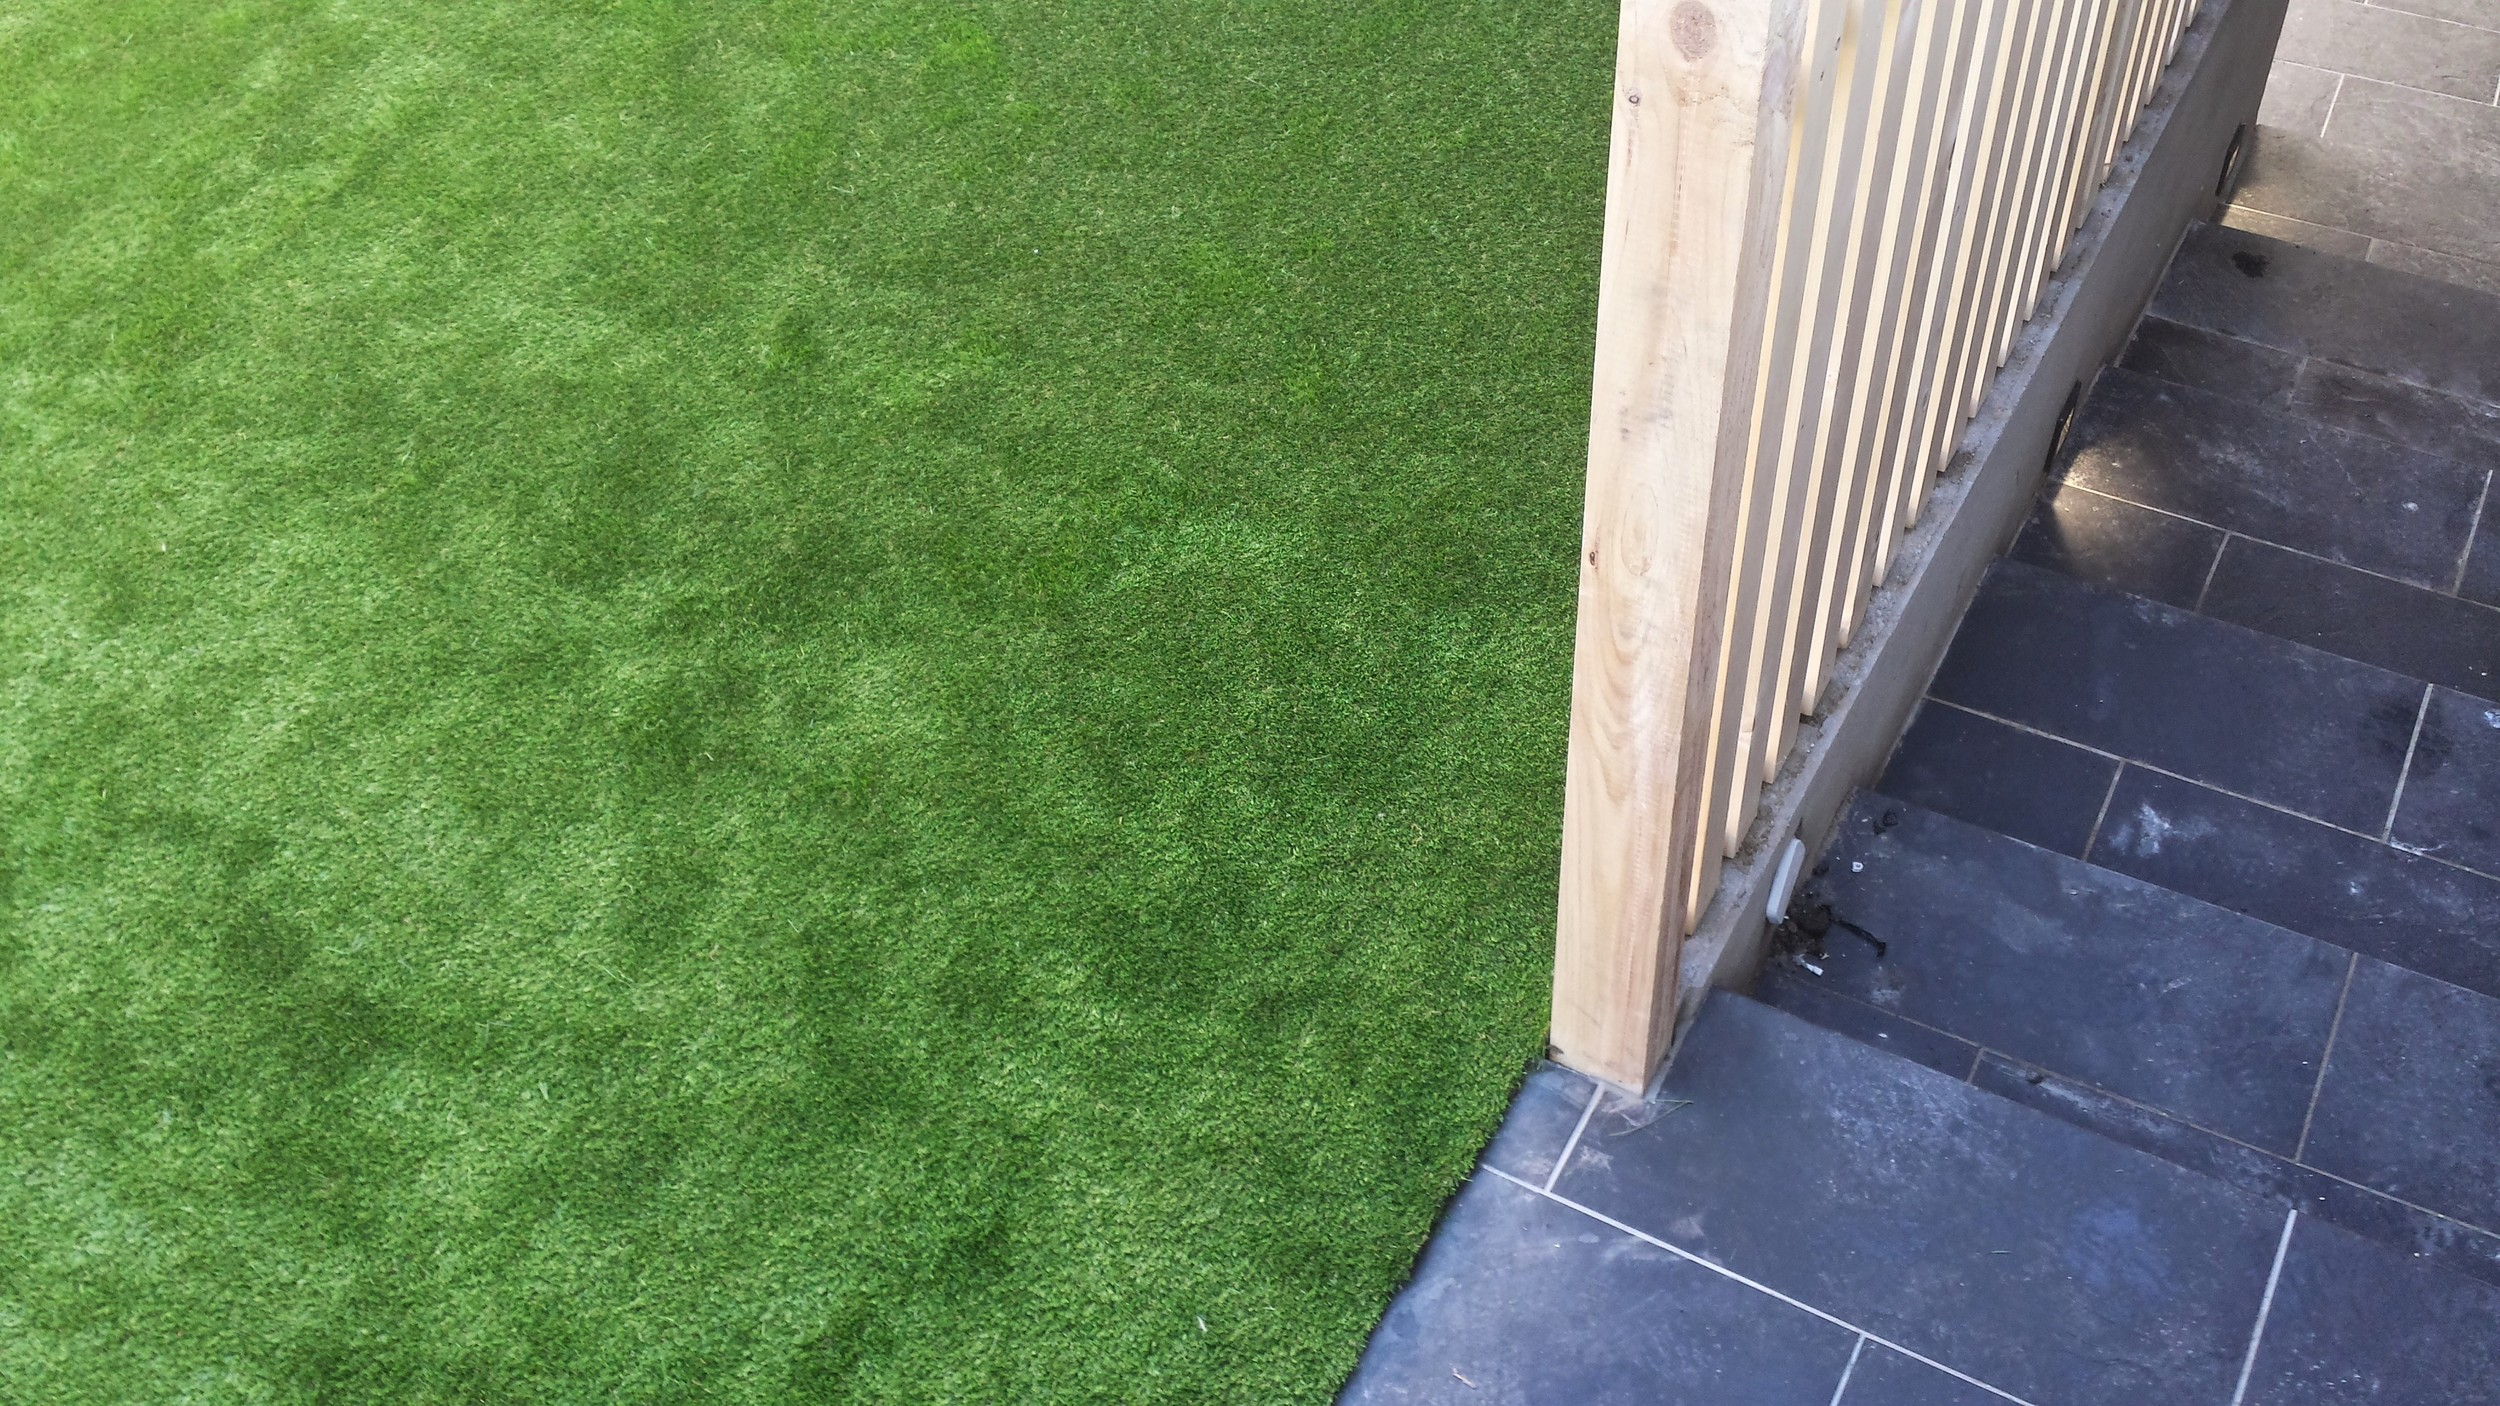 Grass and Steps